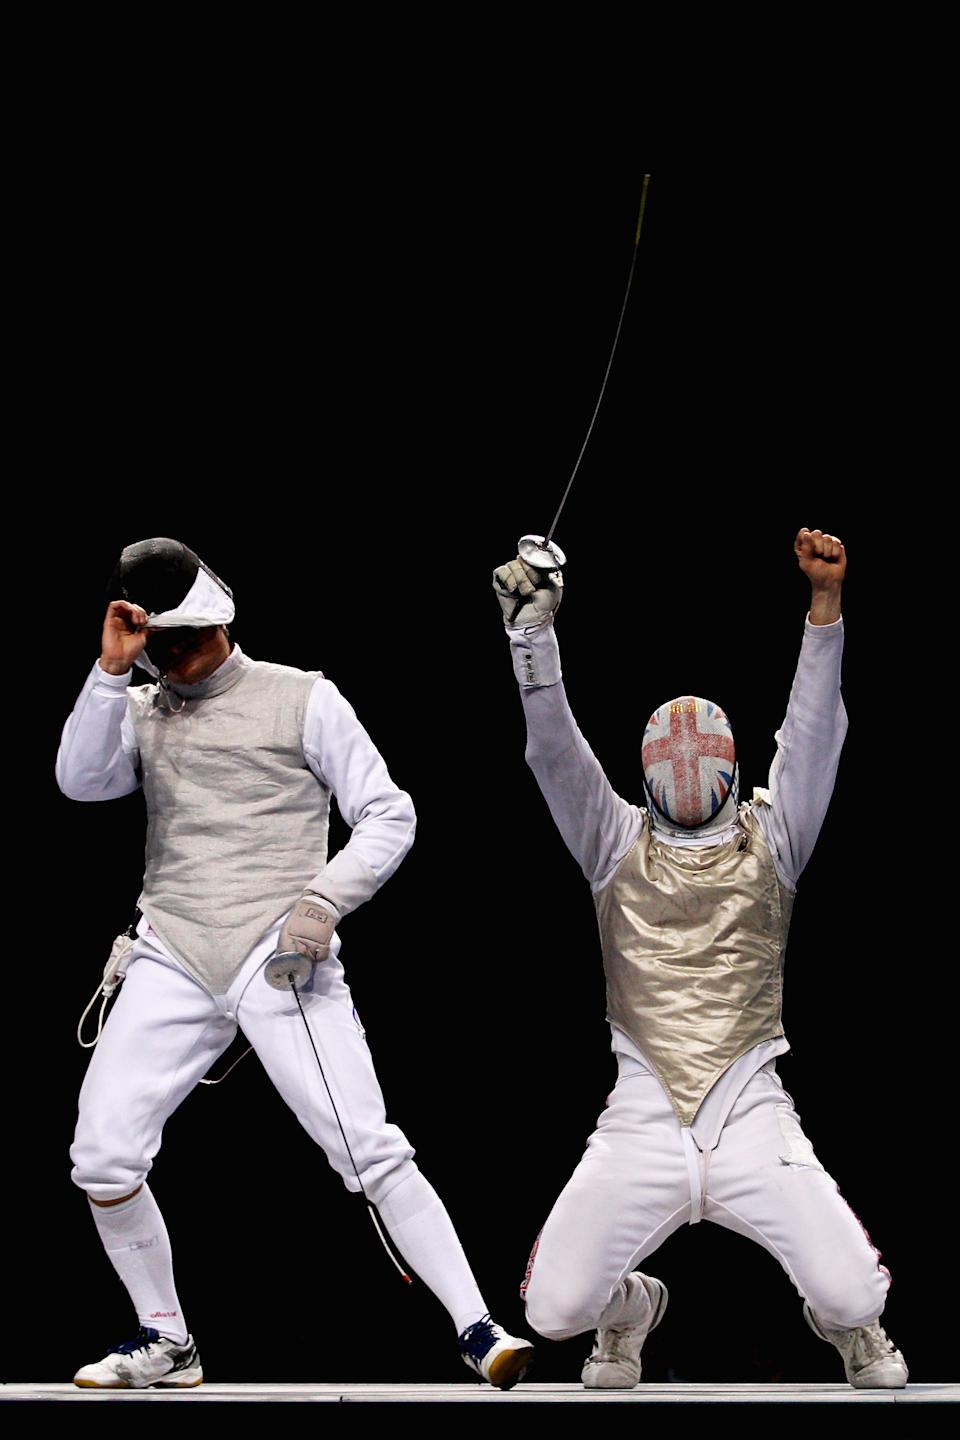 LONDON, ENGLAND - NOVEMBER 27: Dmitri Rigine (L) of Russia looks dejected as Richard Kruse celebrates winning the gold medal win in the Men's Foil Team Final at the Fencing Invitational, part of the London Prepares series at ExCel on November 27, 2011 in London, England (Photo by Dean Mouhtaropoulos/Getty Images)